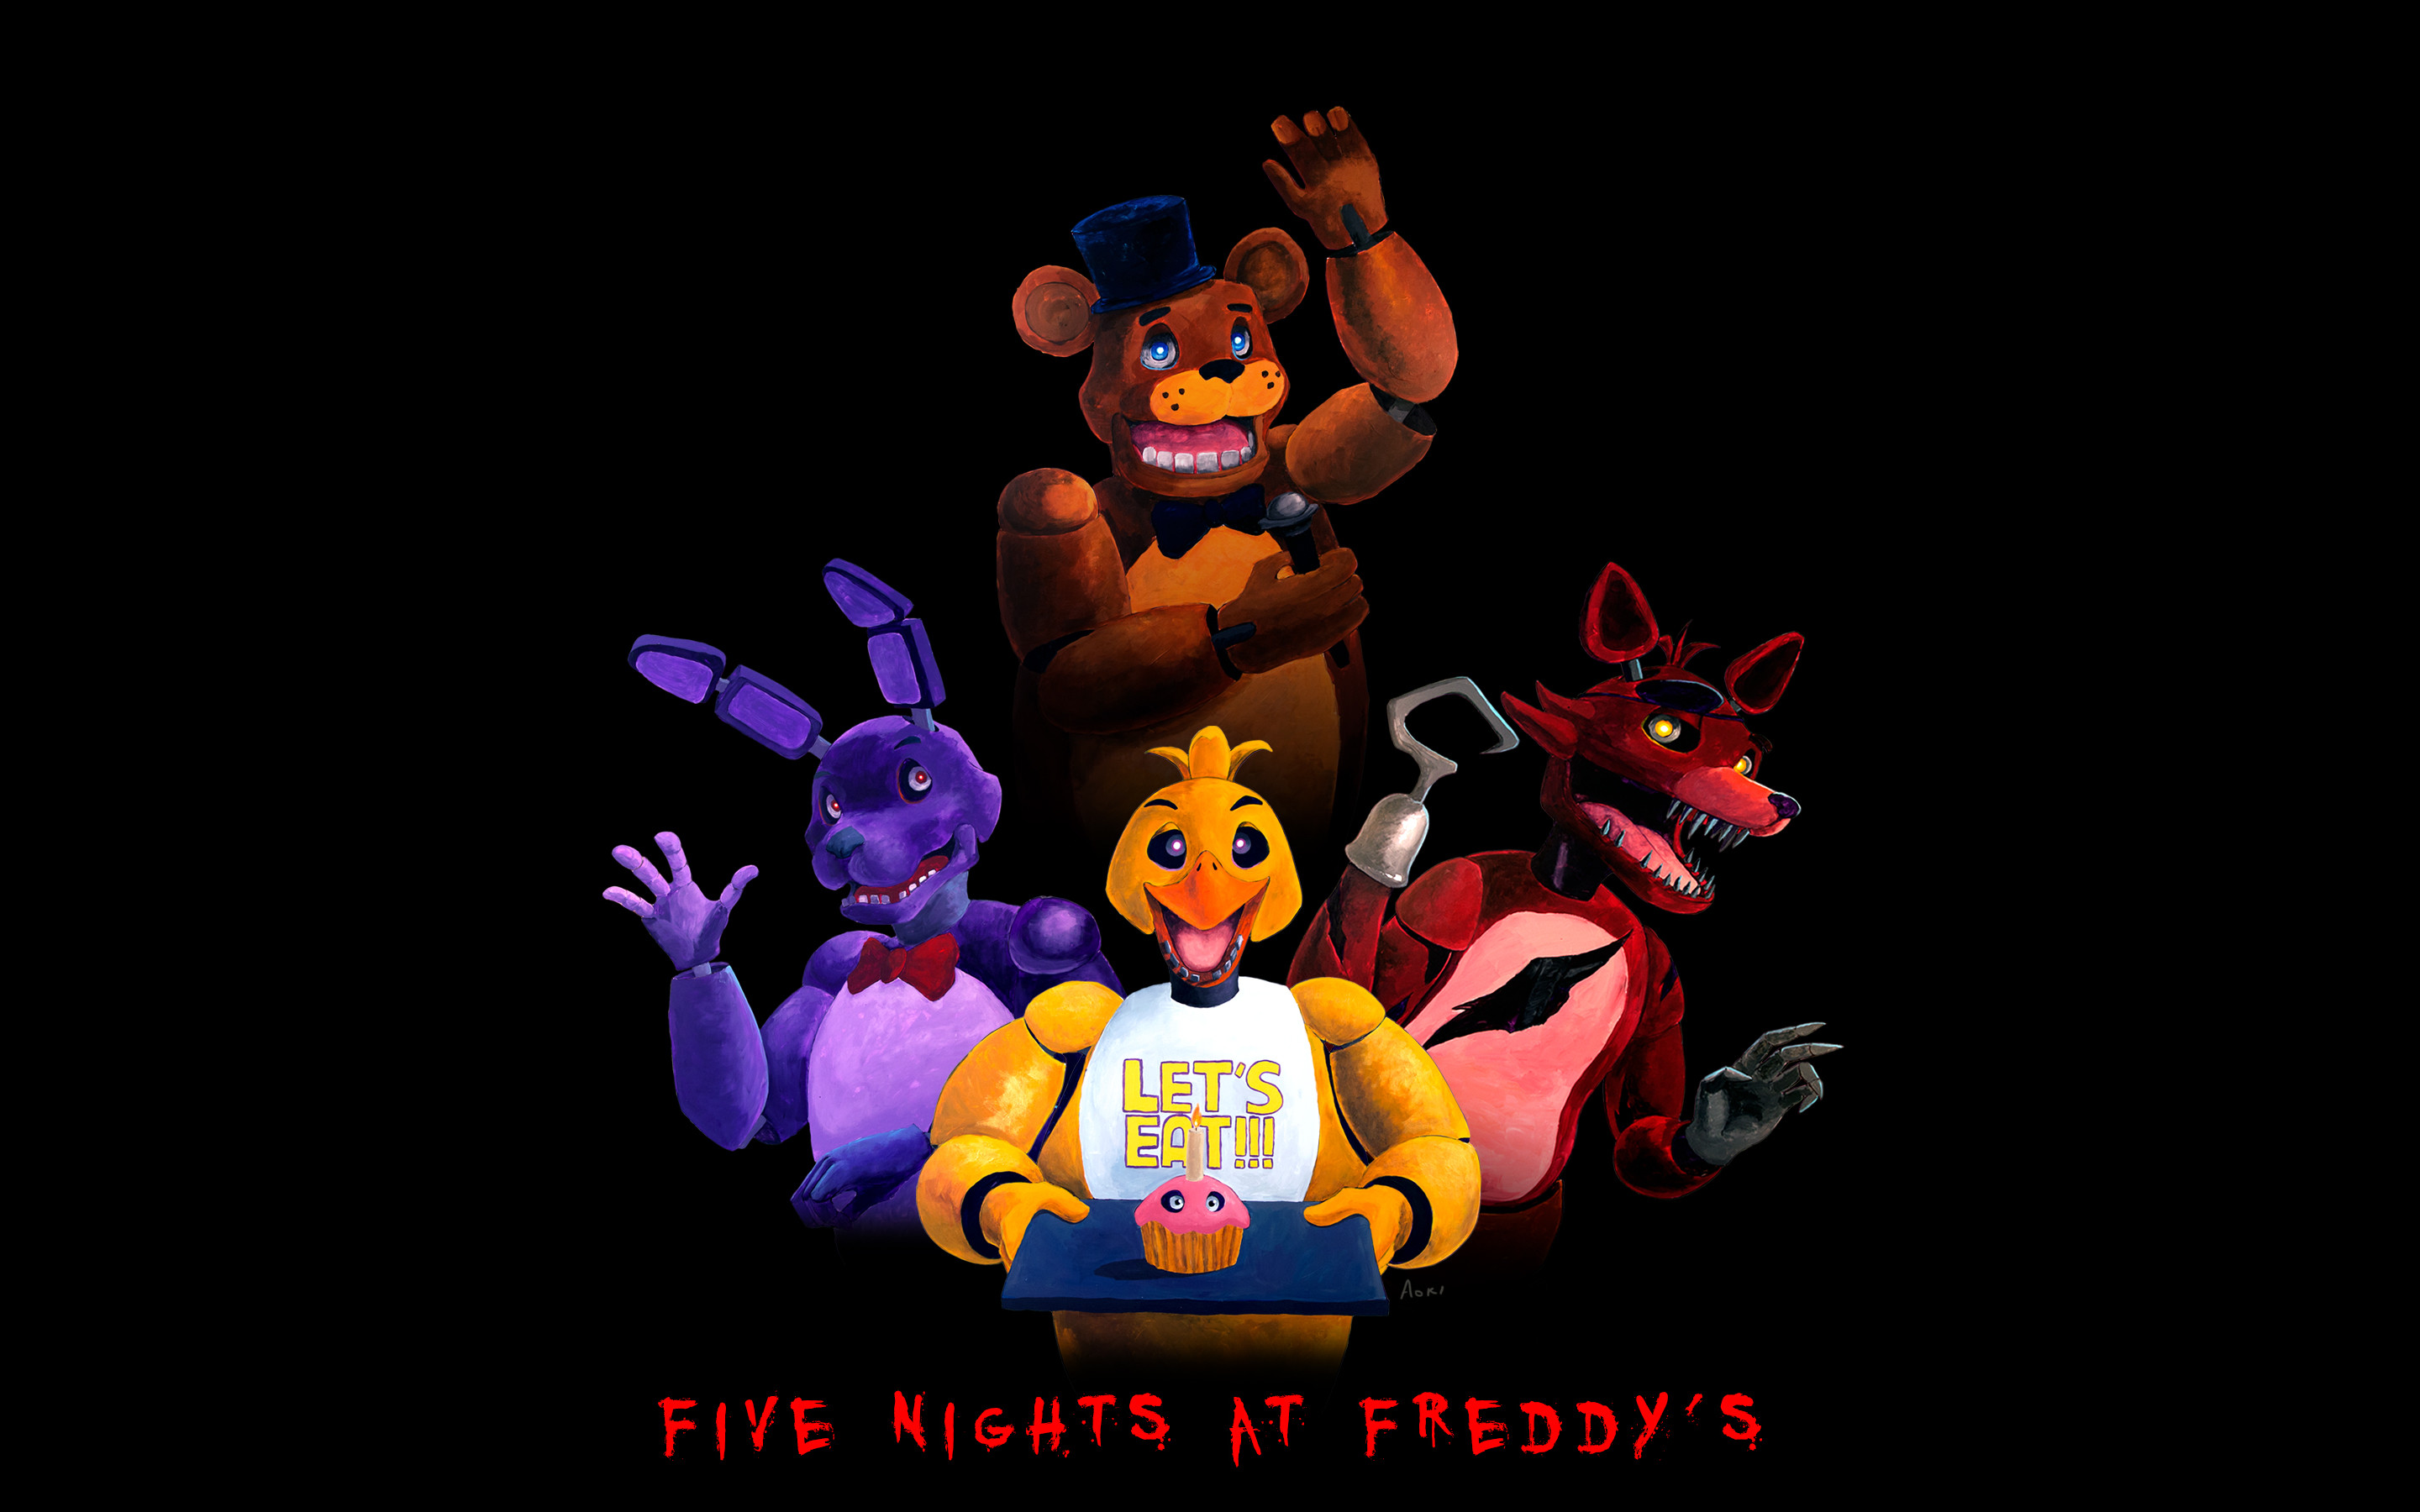 2880x1800 FNAF wallpaper by Aokibengal